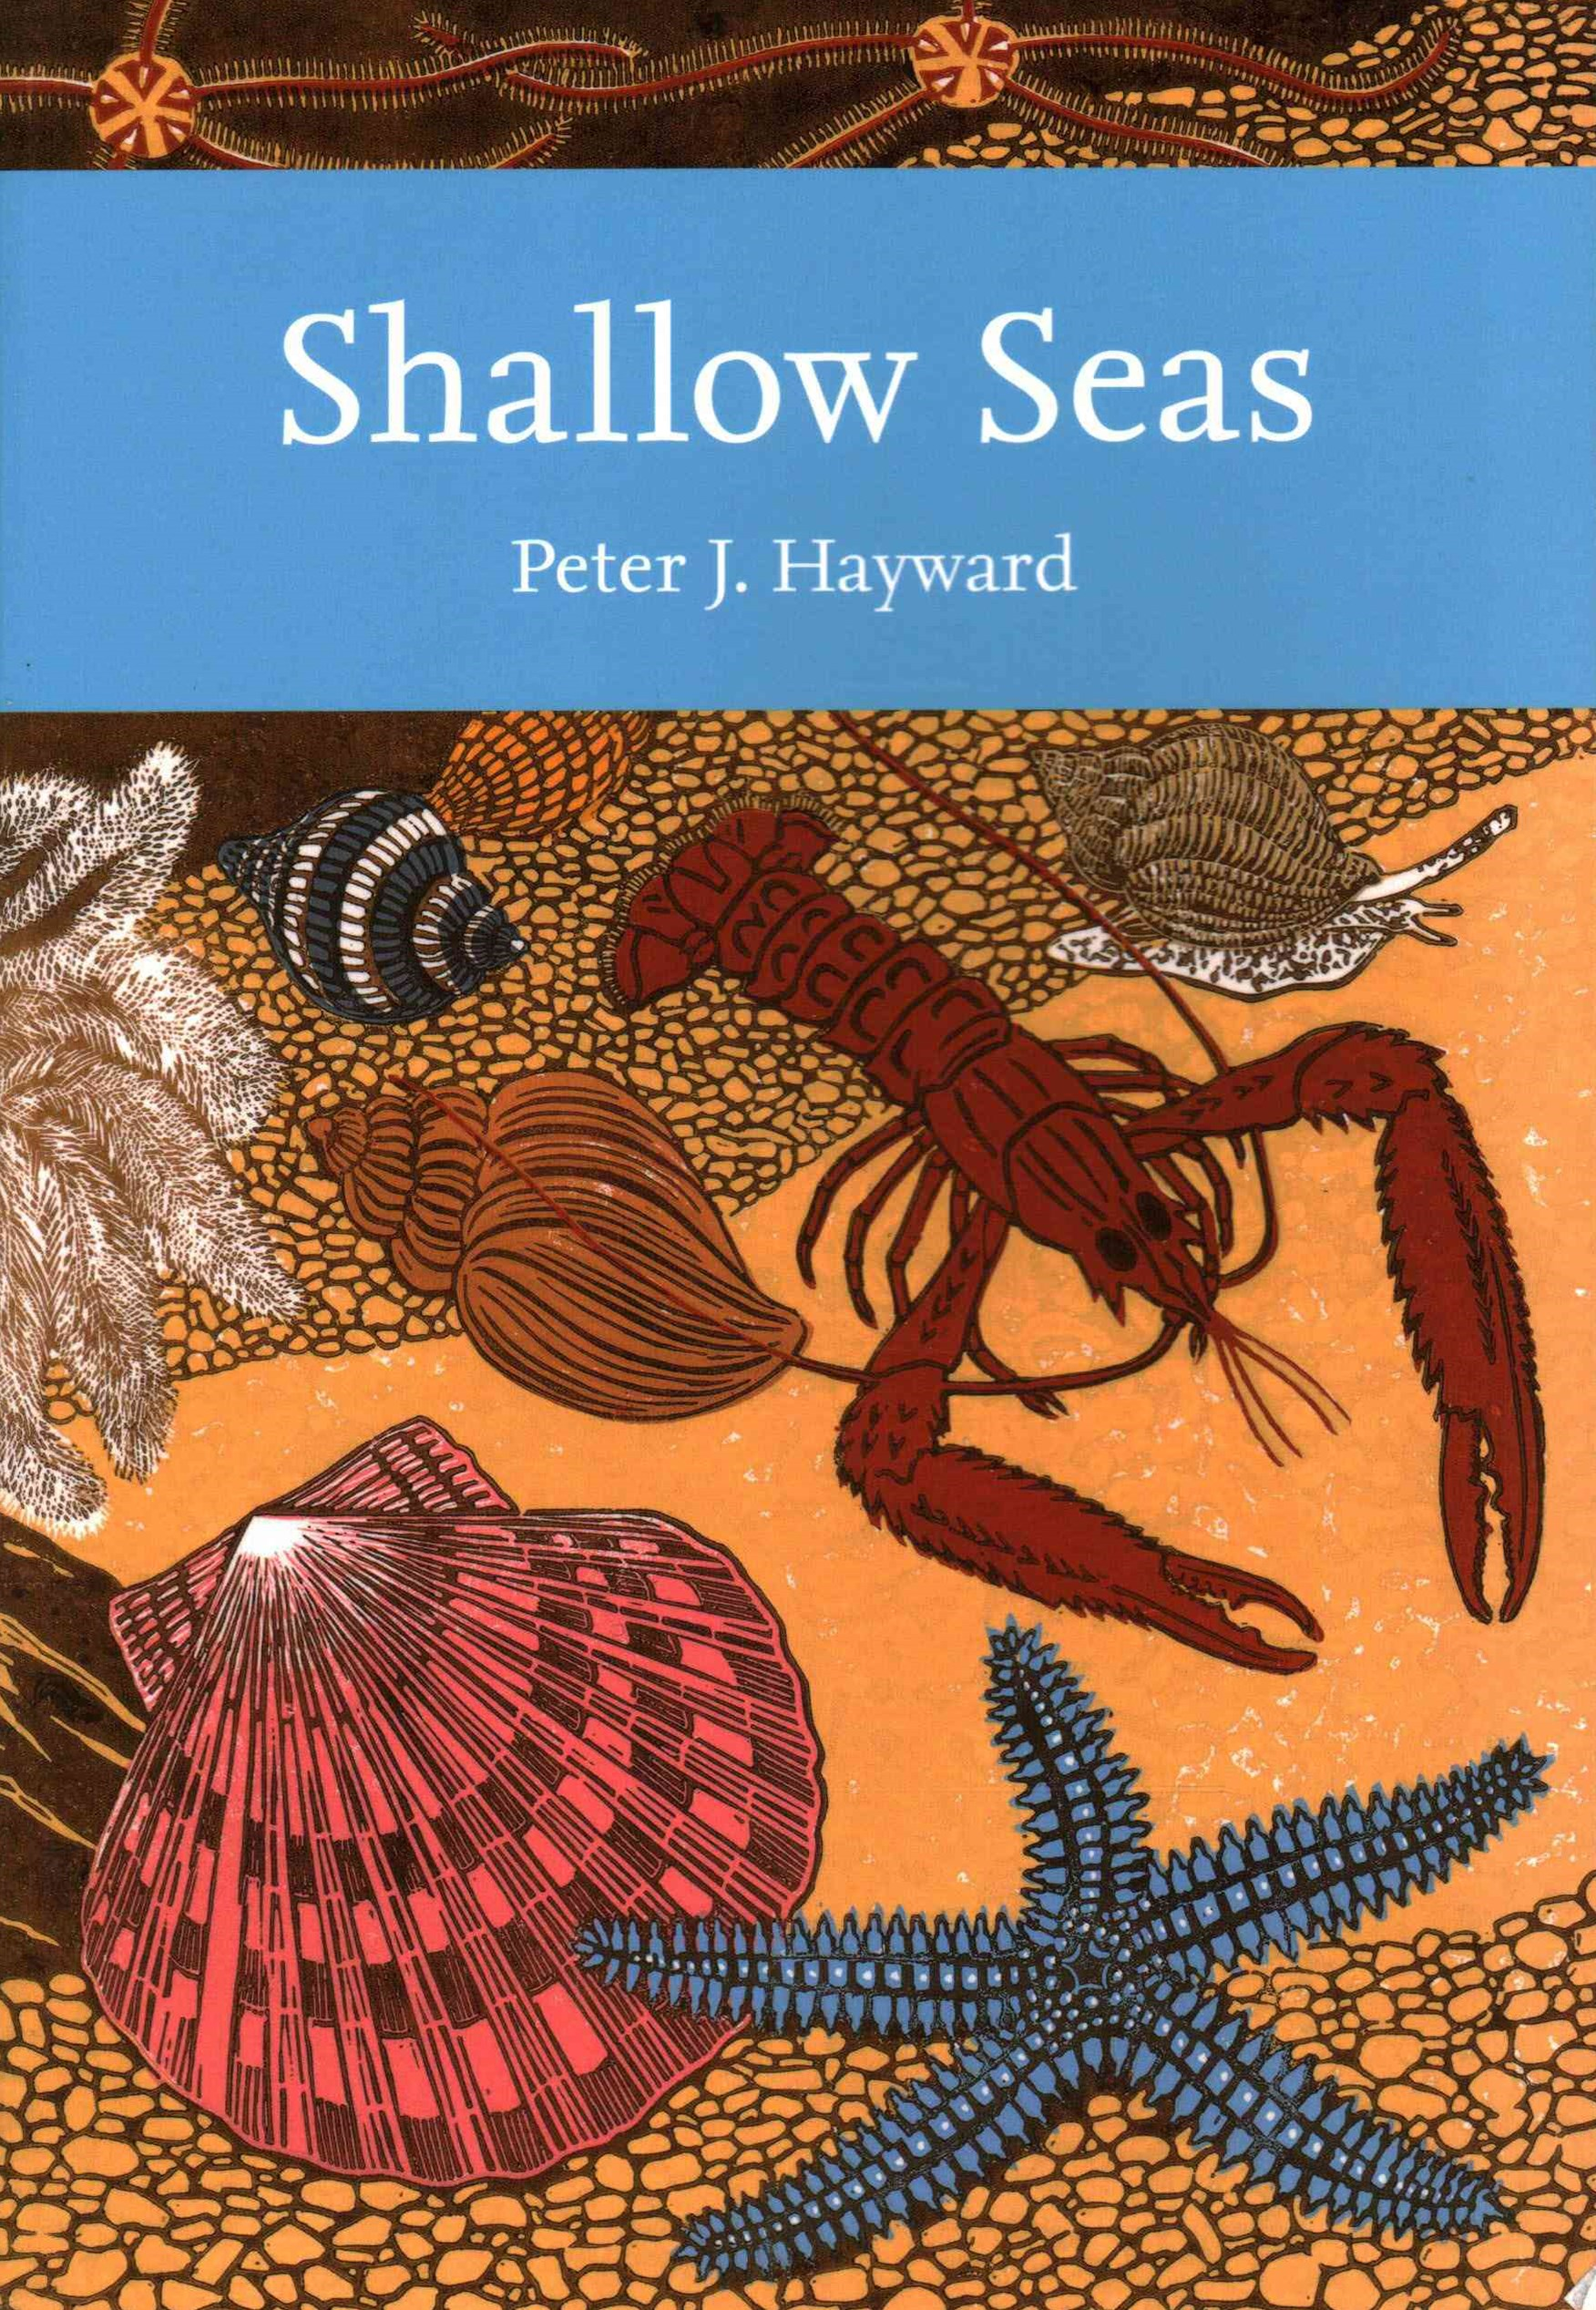 Collins New Naturalist Library: Shallow Seas